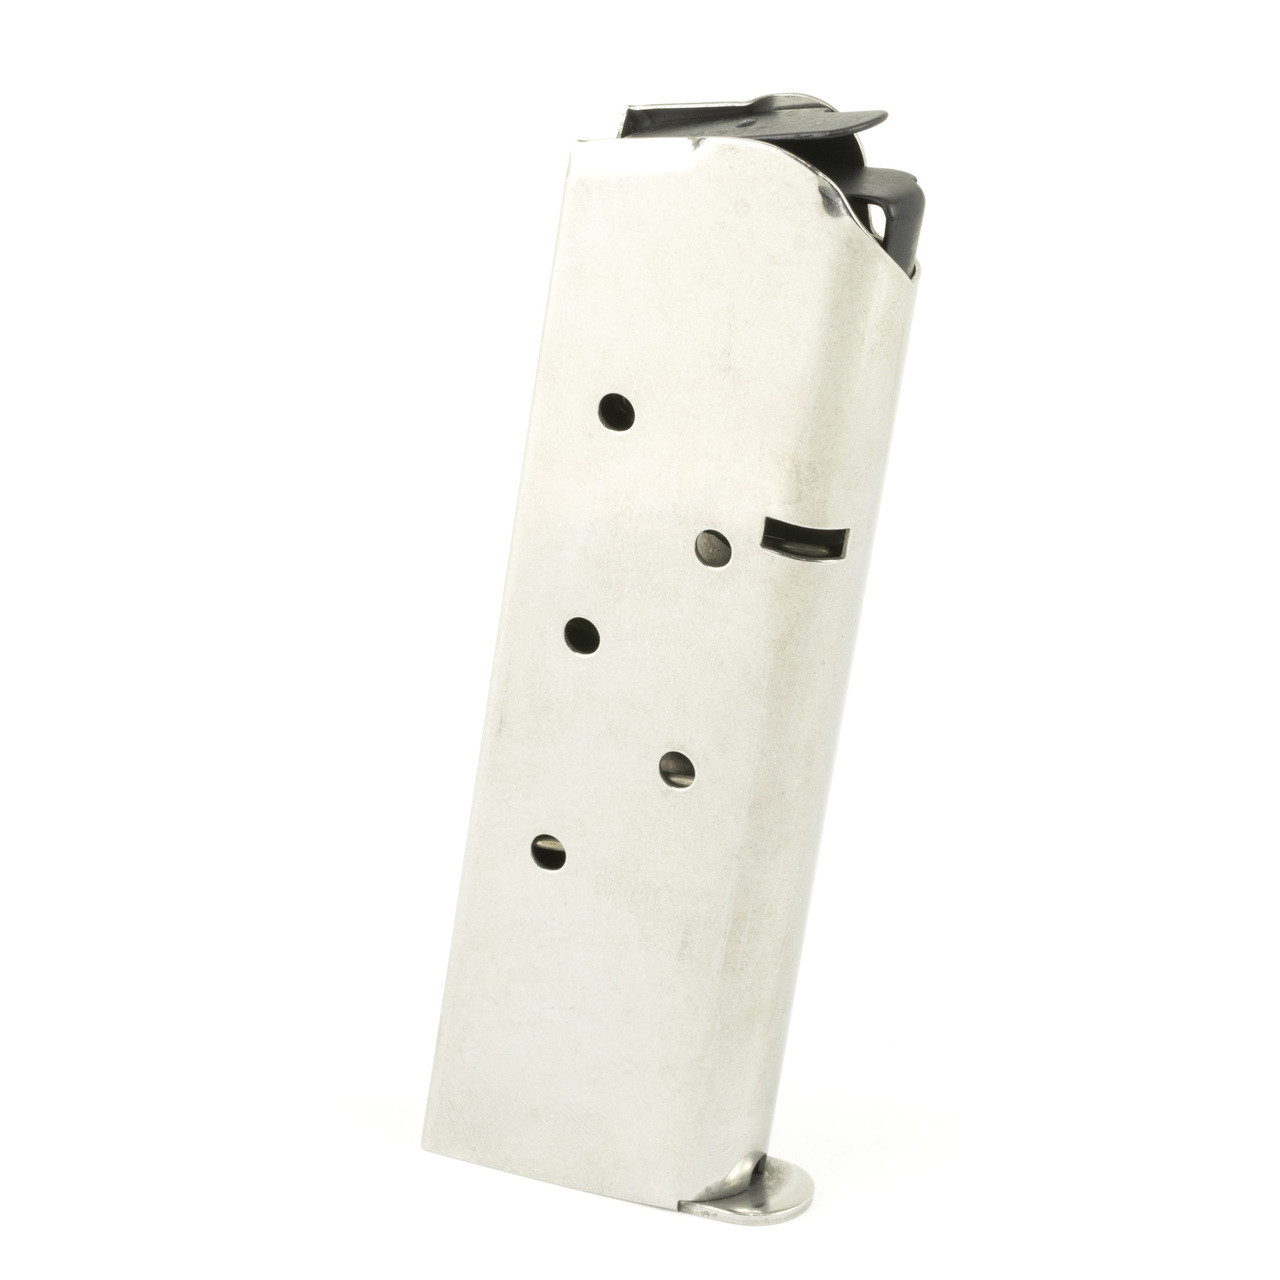 Ruger Magazine, 45 ACP, 7Rd, Stainless Finish, Fits Ruger SR1911 90366, UPC  :736676903665